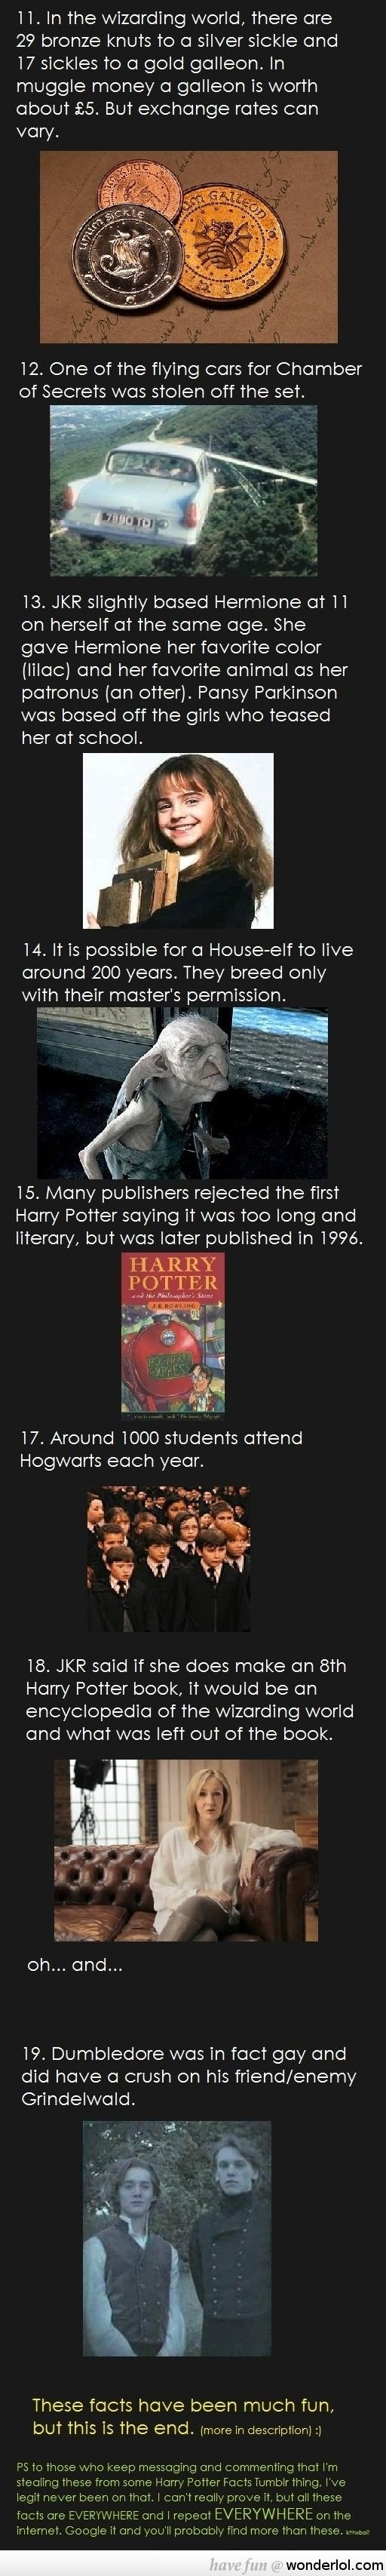 Best Harry Potter Fun Facts Images On Pinterest Harry Potter - 18 amazing facts you probably didnt know about google